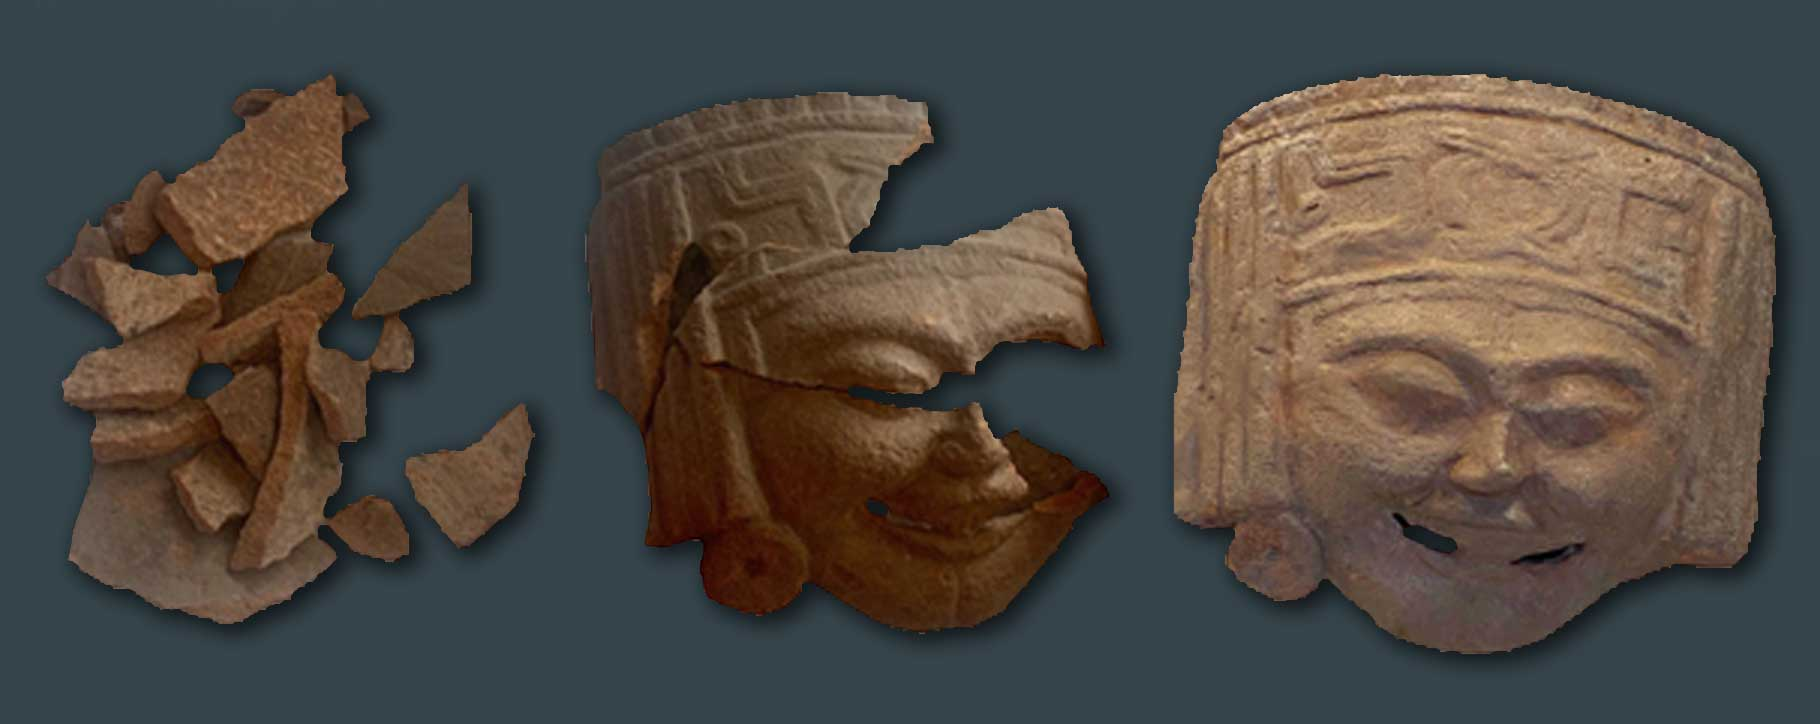 Terracotta mask before and after